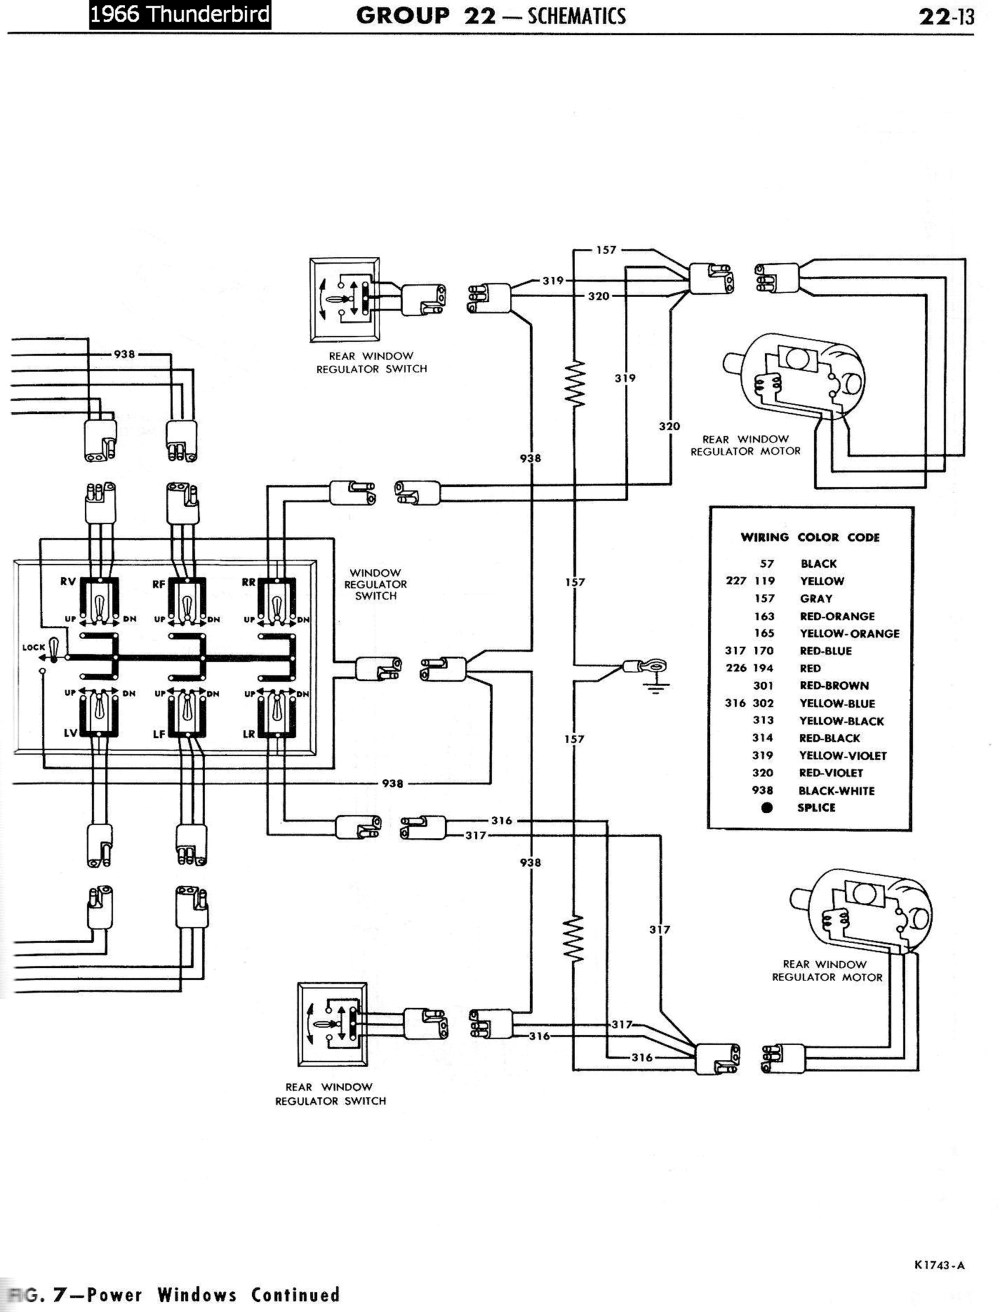 medium resolution of 1968 f100 blinker wiring diagrams opinions about wiring diagram u2022 rh voterid co 1999 ford f150